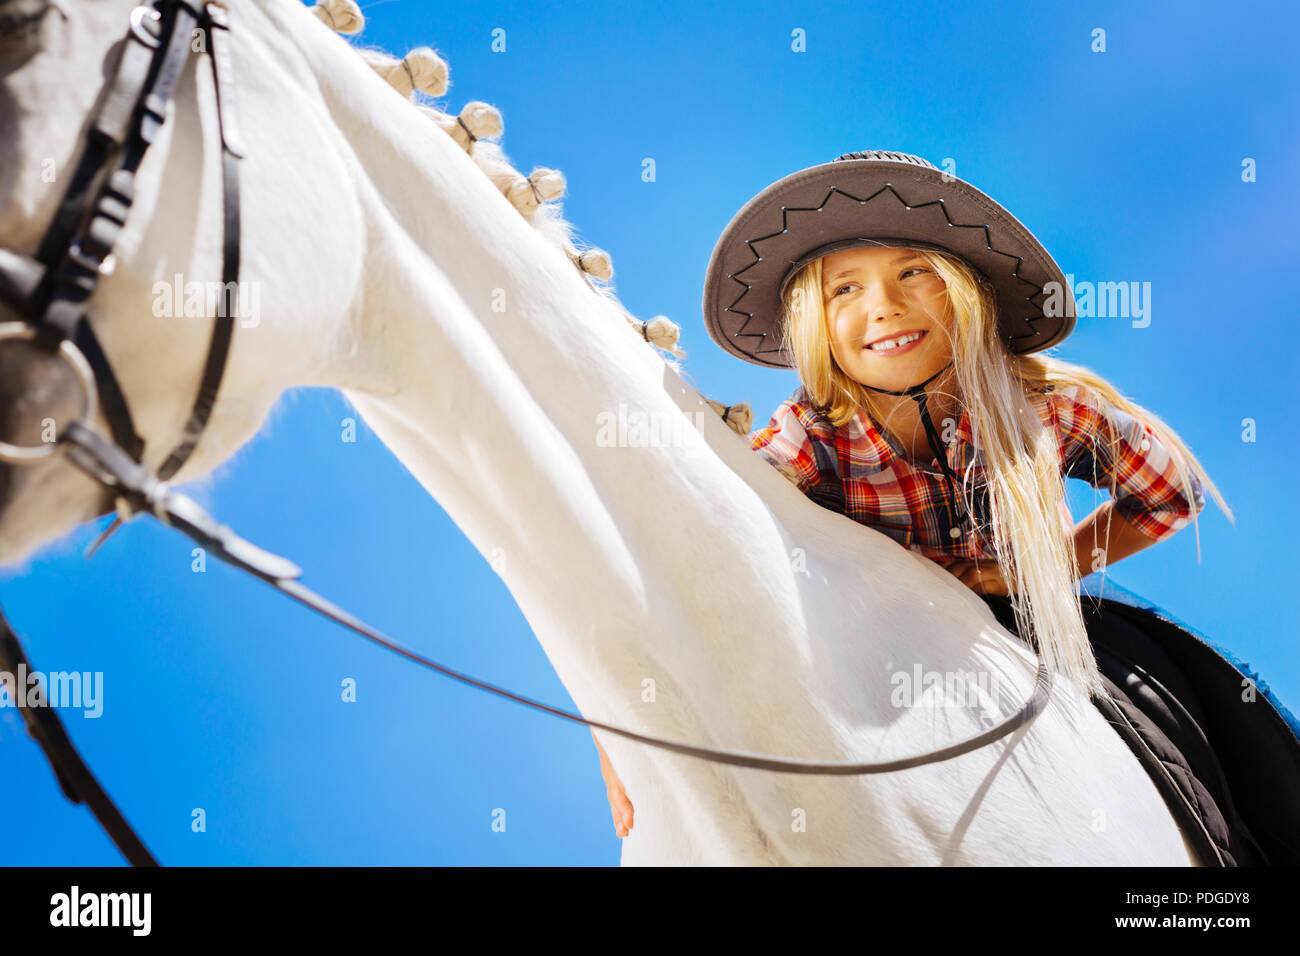 Cute smiling girl petting white racing horse while sitting on him - Stock Image